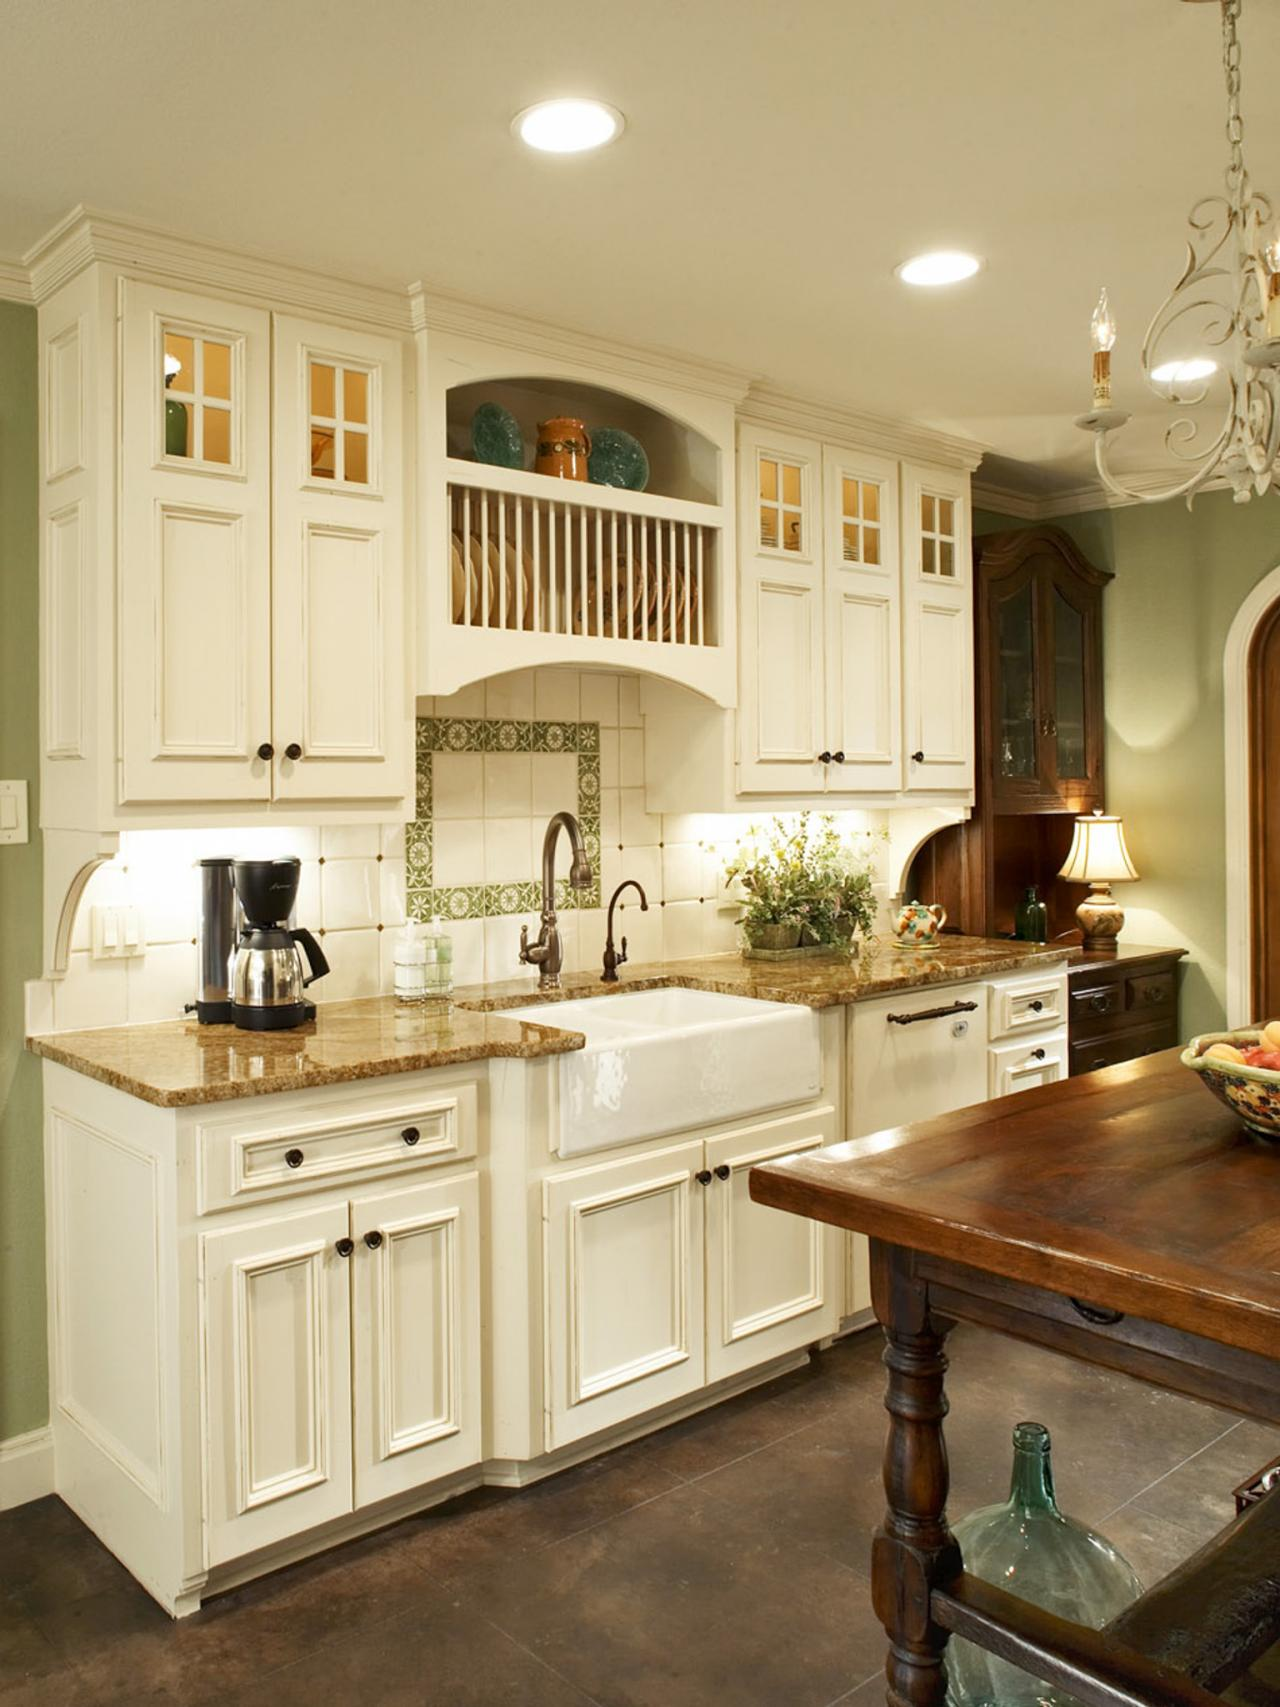 French country kitchens - What Was The Biggest Issue The Design Addressed